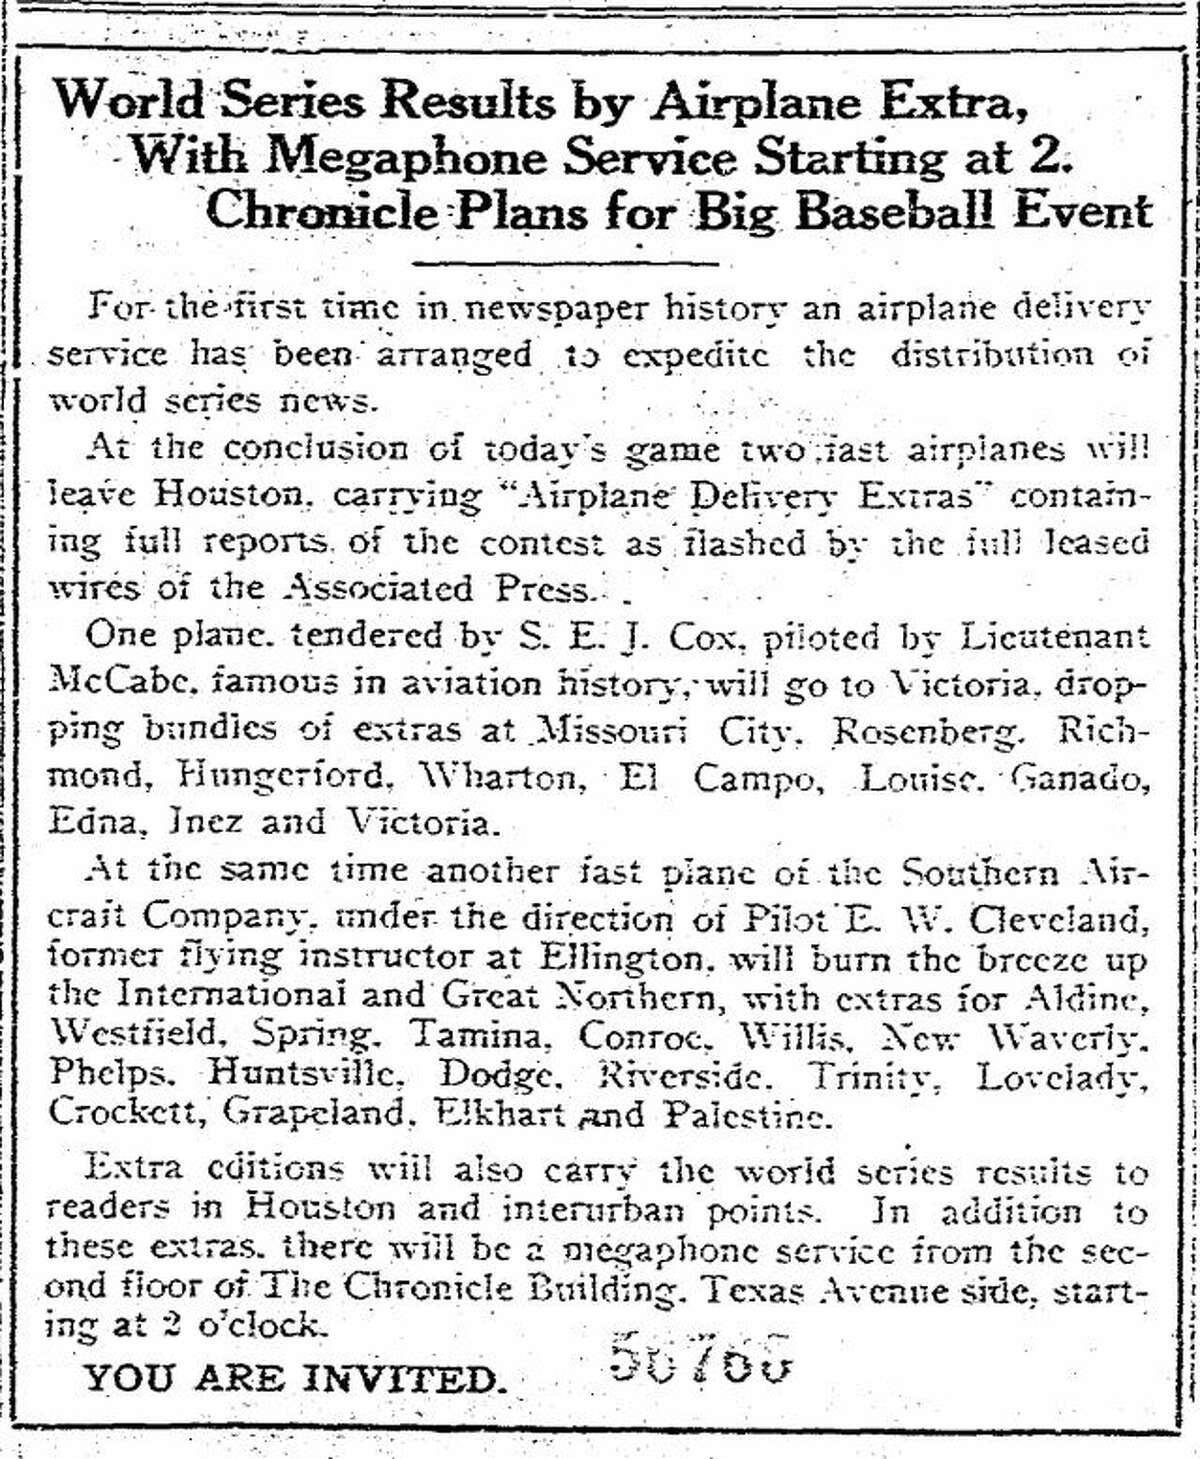 Houston Chronicle announcement regarding World Series extra deliveries on Oct. 1, 1919.